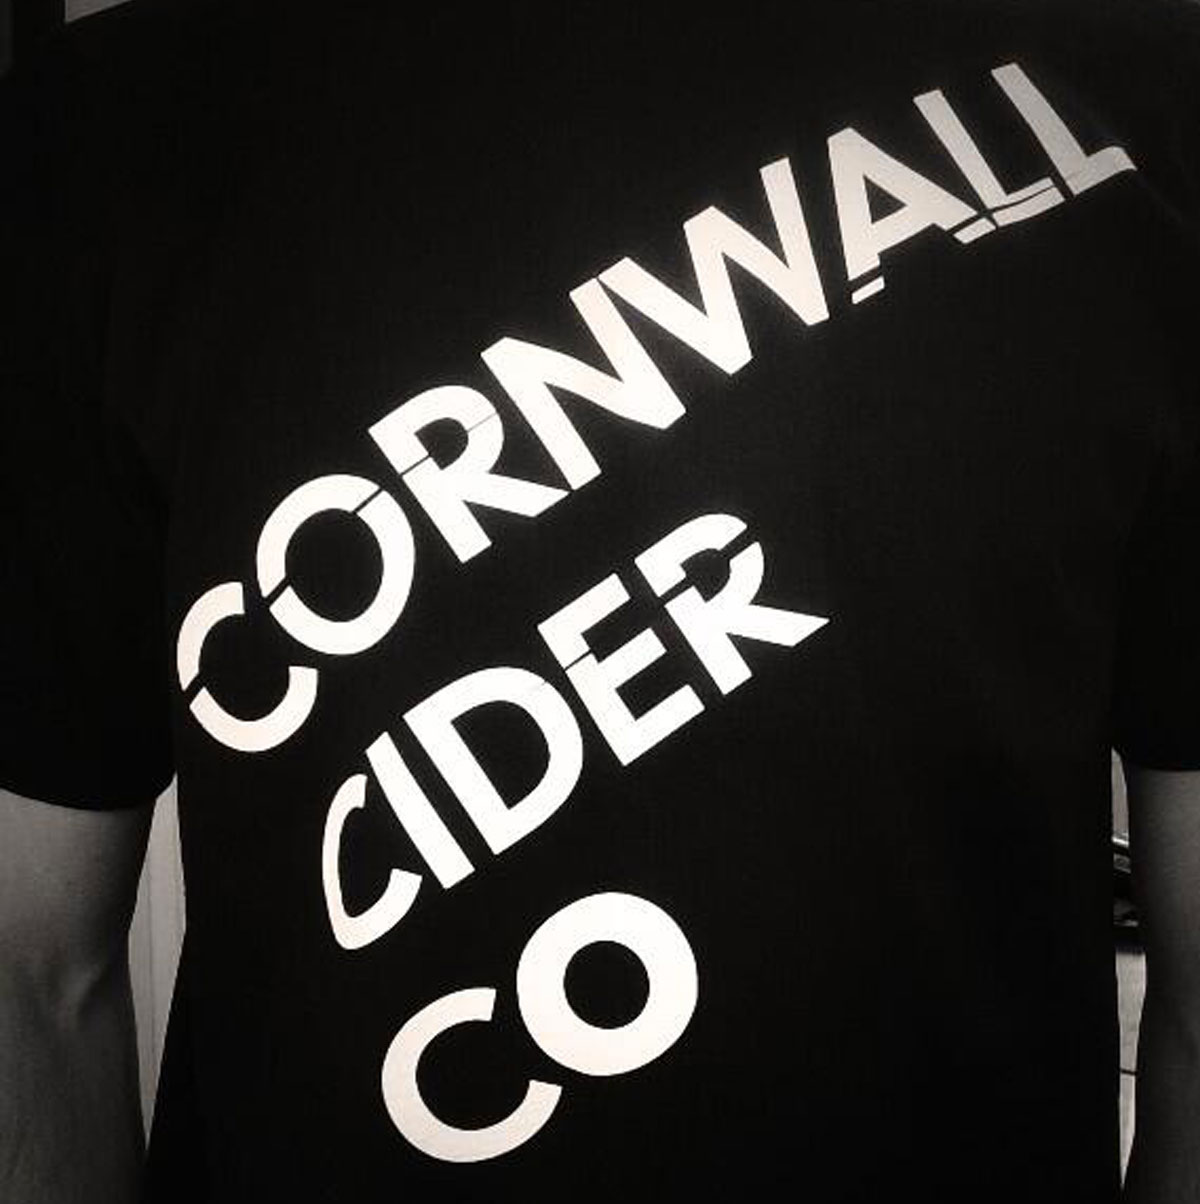 cornwall-cider-co-square-gallery-08.jpg